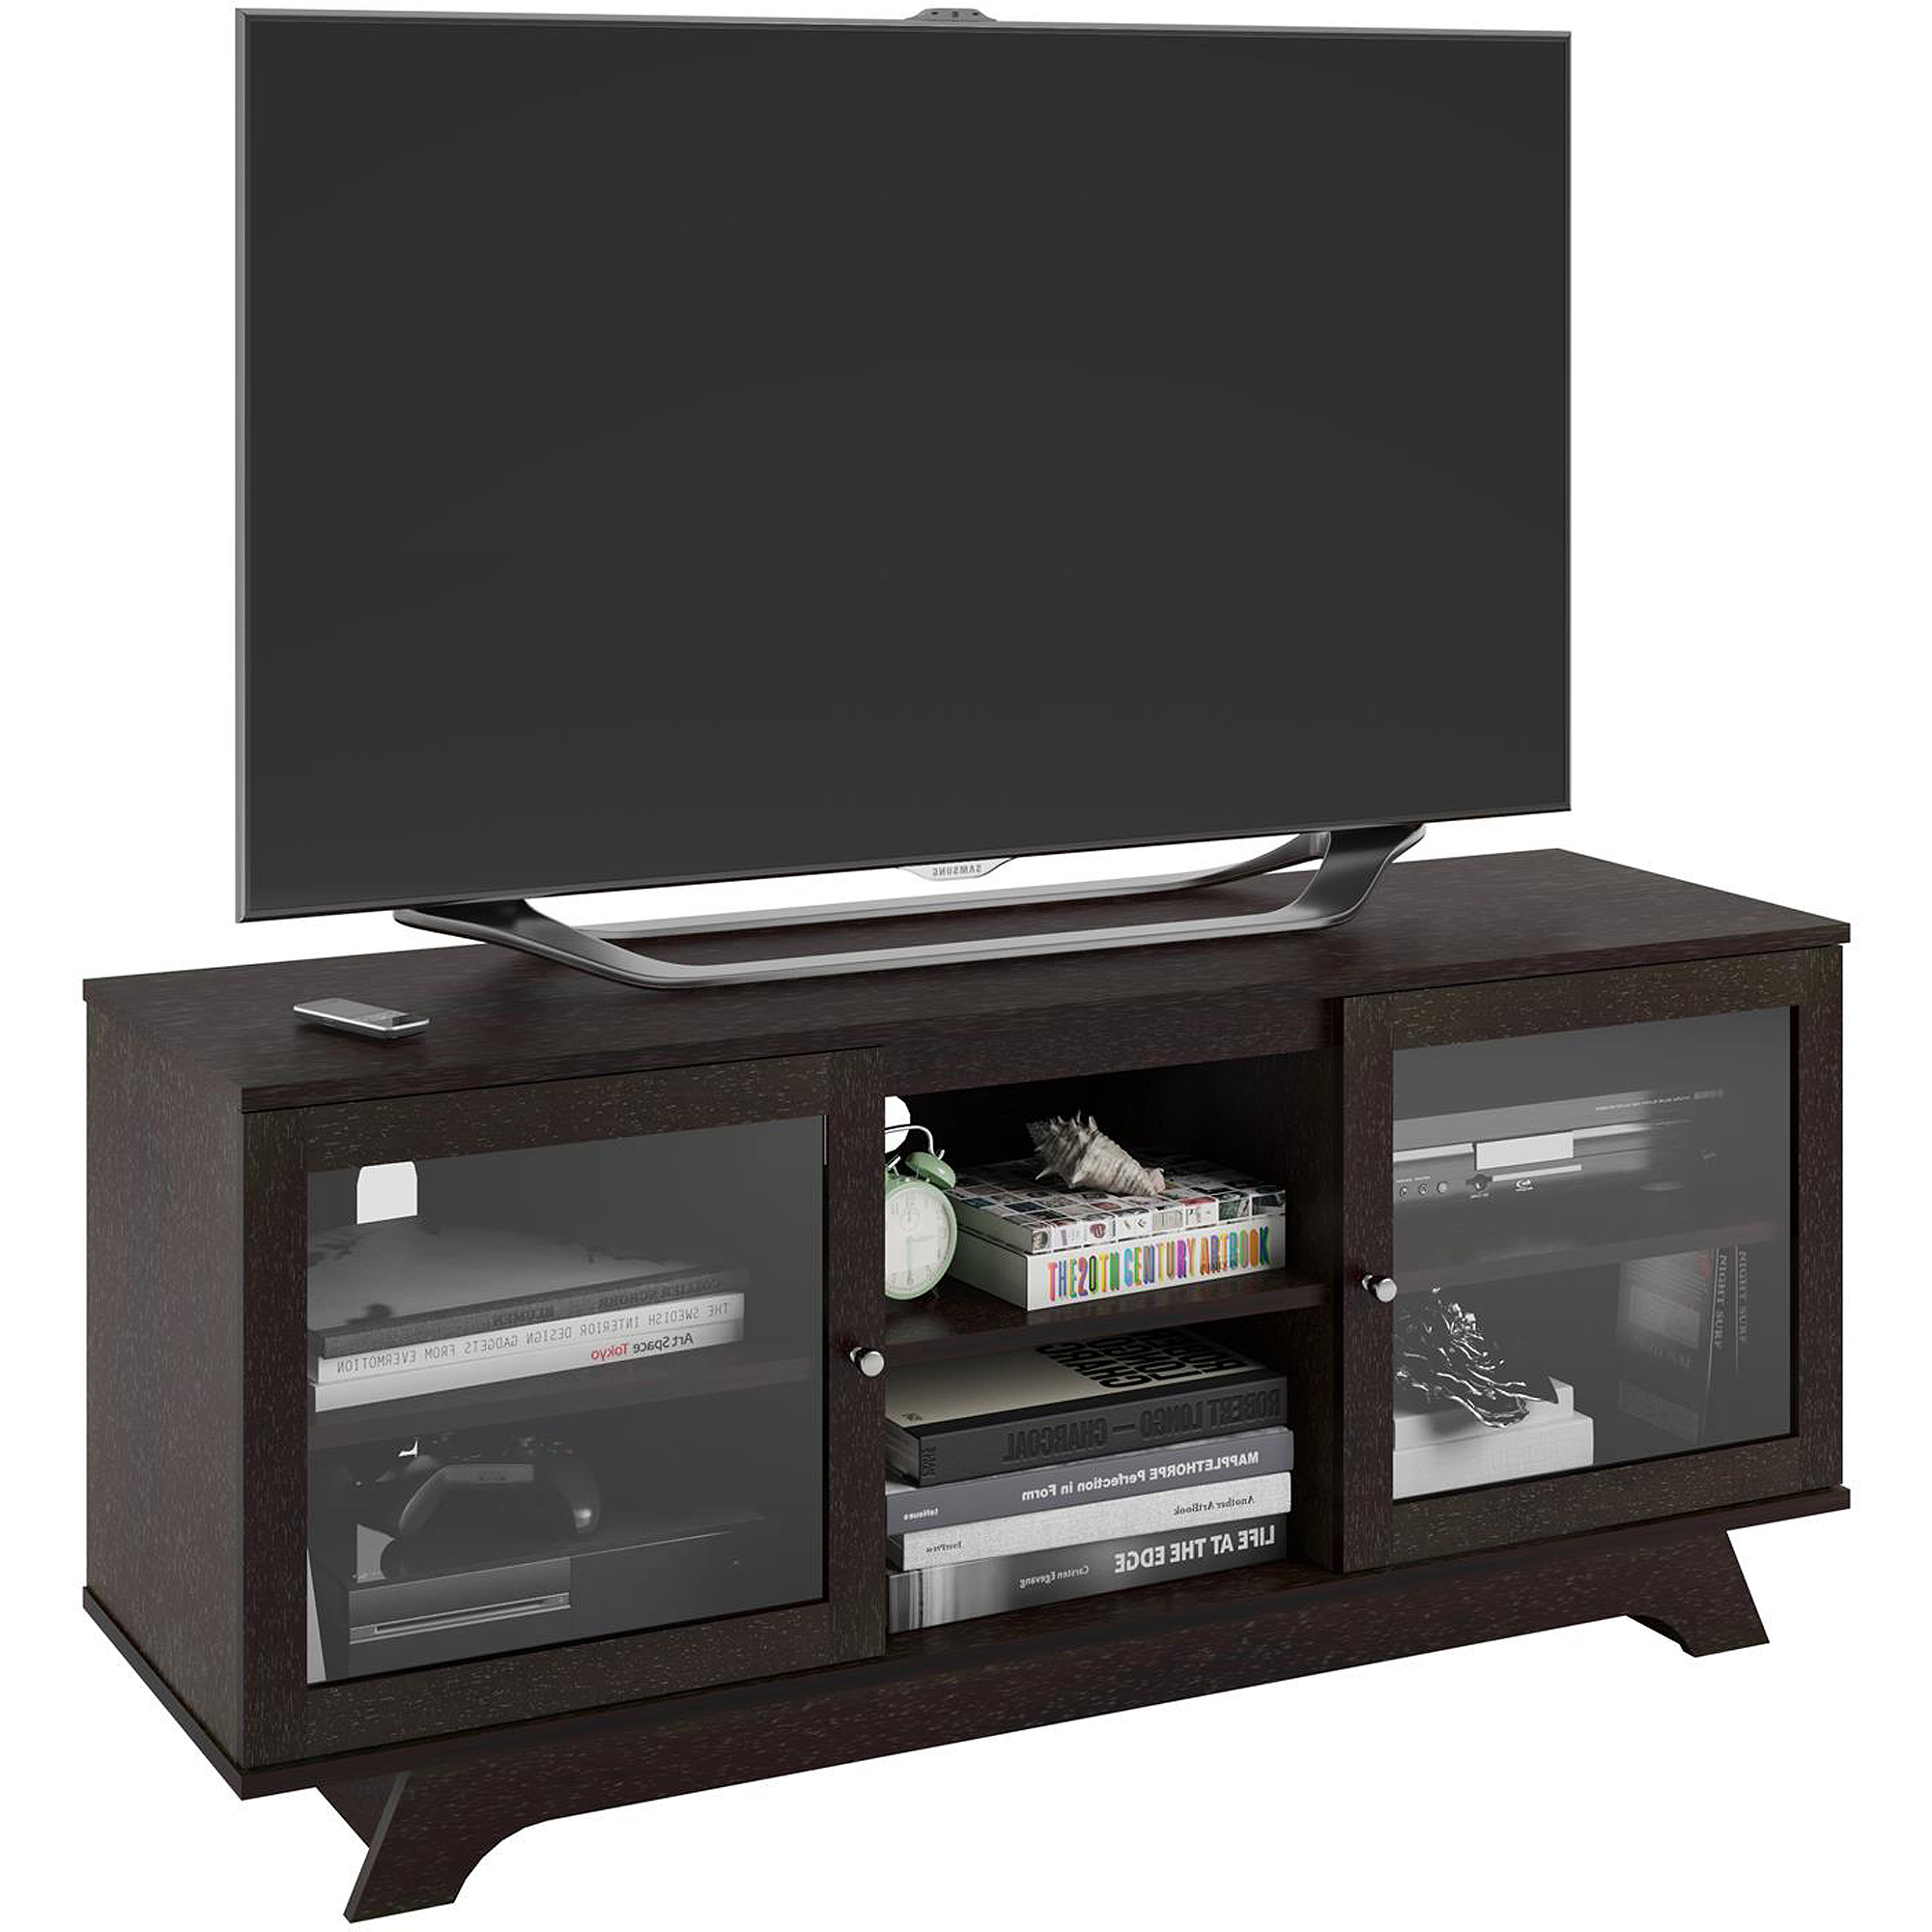 "Latest Tv Cabinets With Glass Doors In Ameriwood Home Englewood Tv Stand For Tvs Up To 55"", Espresso (View 13 of 20)"